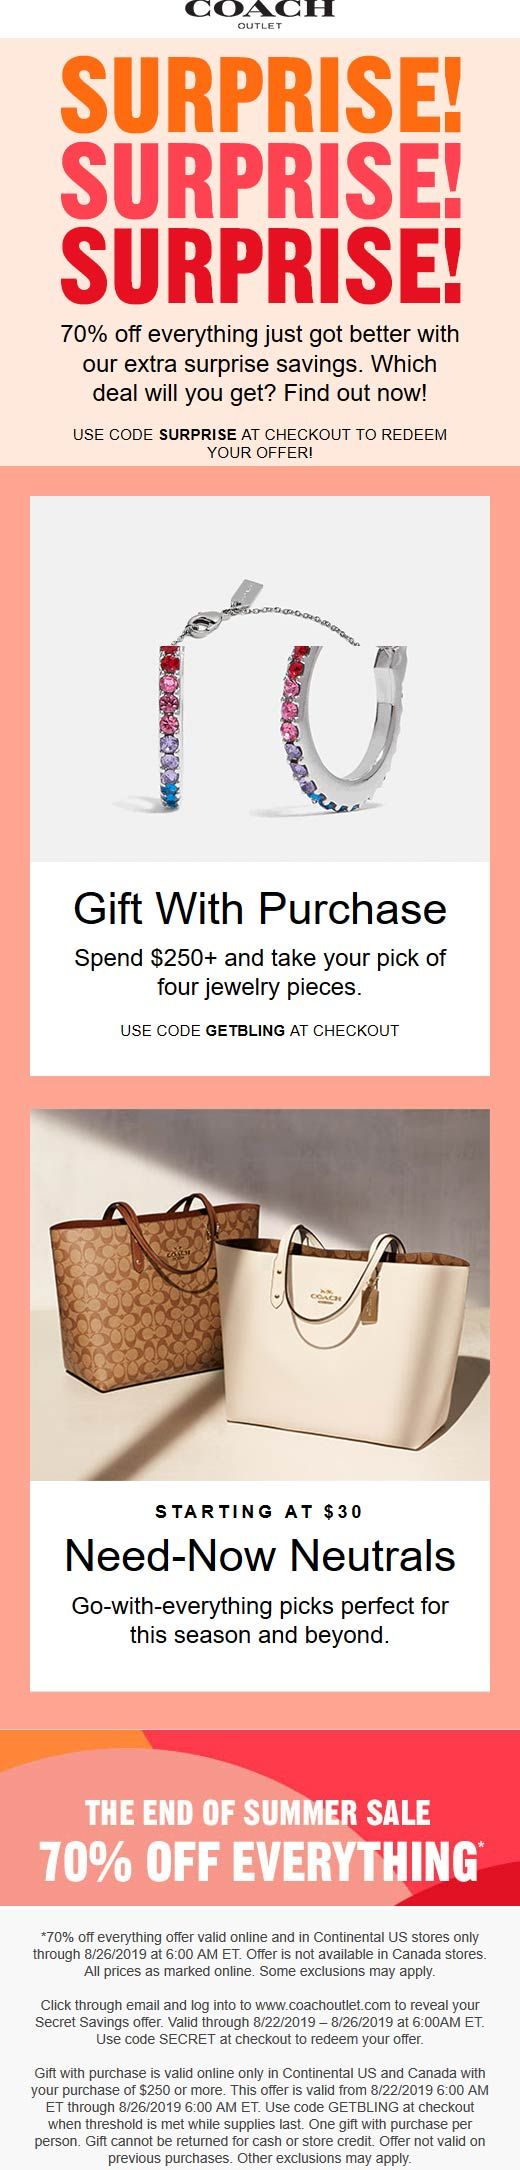 Coach Outlet 🆓 Coupons & Shopping Deals! Shopping coupons